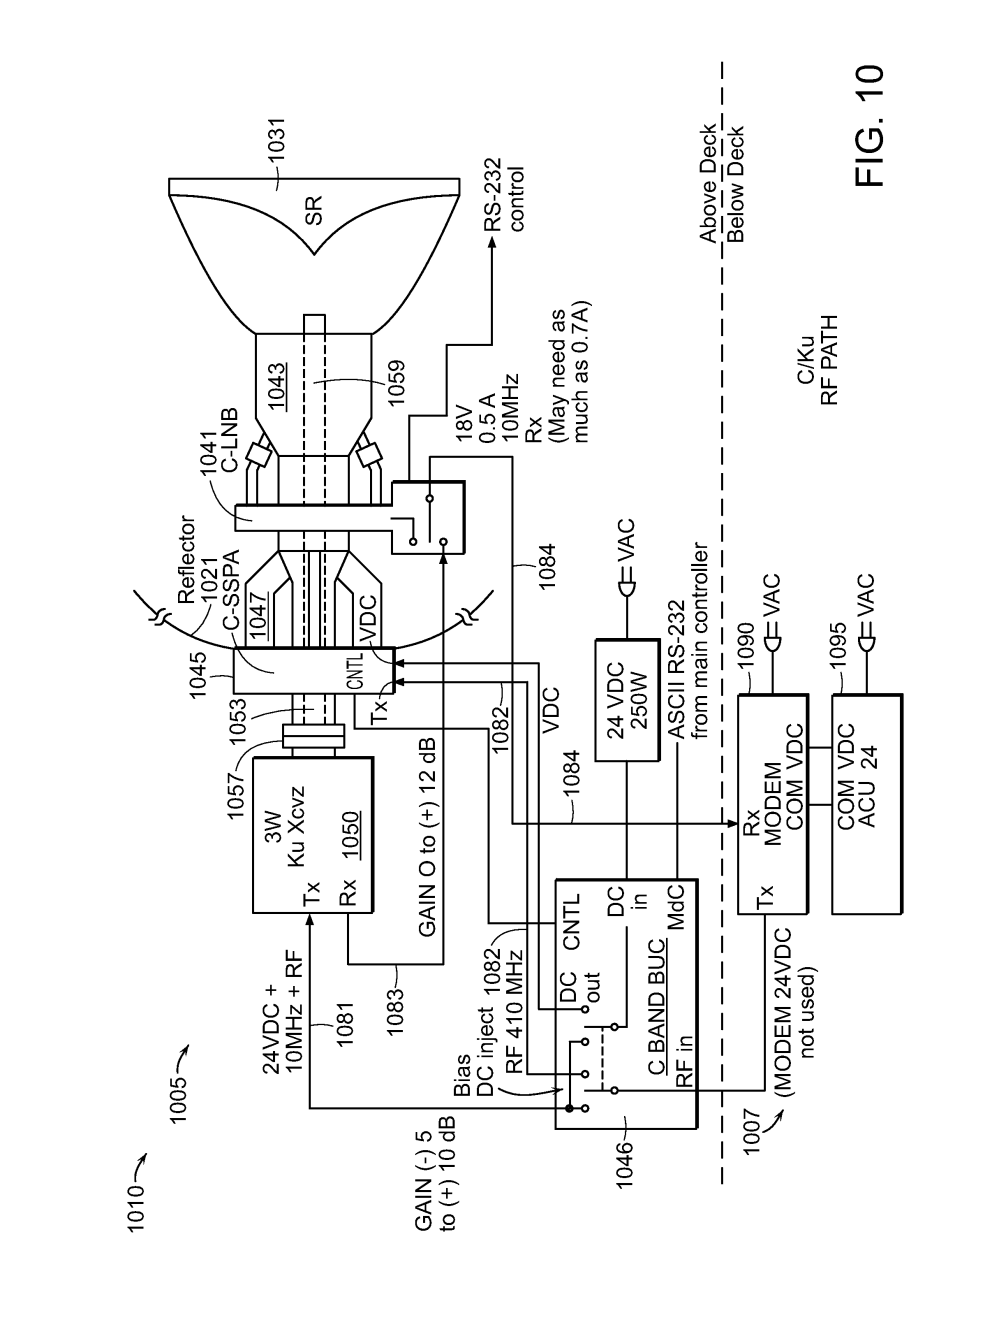 medium resolution of c band lnb circuit diagram wiring librarypatent drawing patent us20140057576 agile diverse polarization multi frequency patent